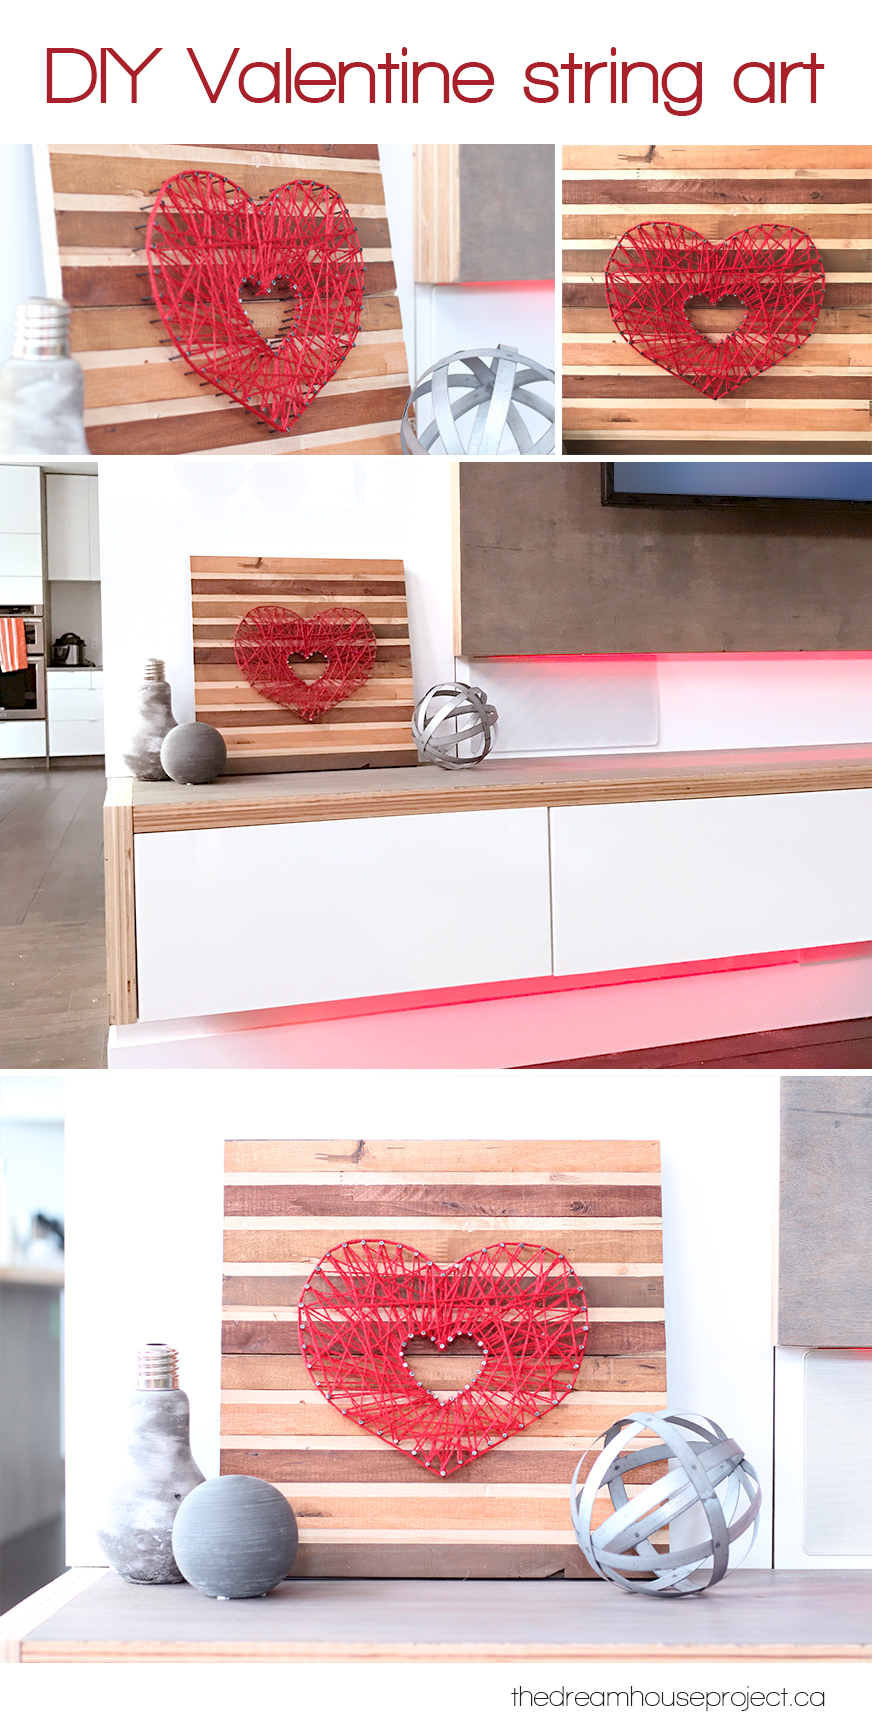 DIY Valentine String Art | The Dreamhouse Project